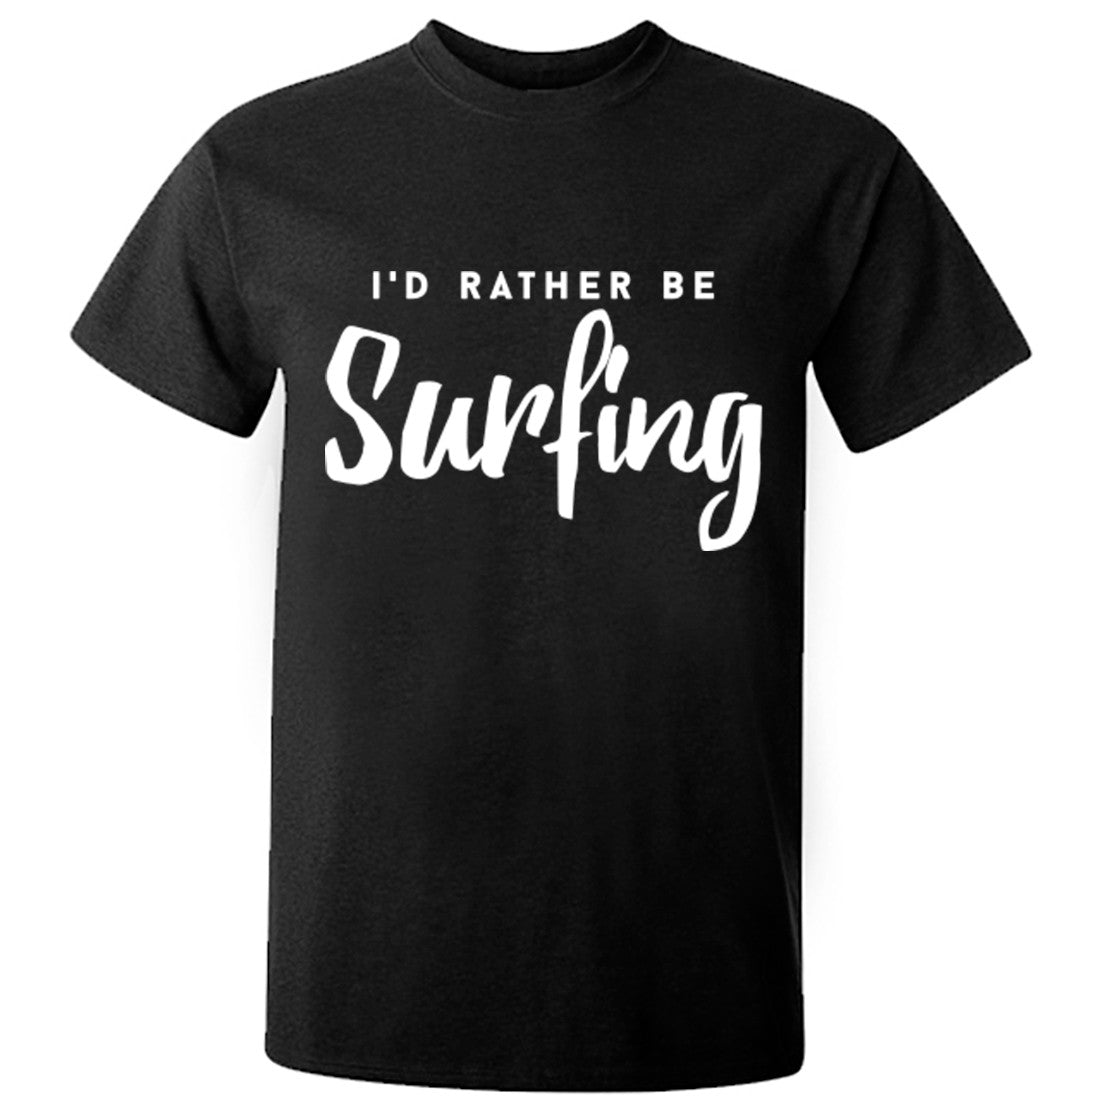 I'd Rather Be Surfing unisex t-shirt K0211